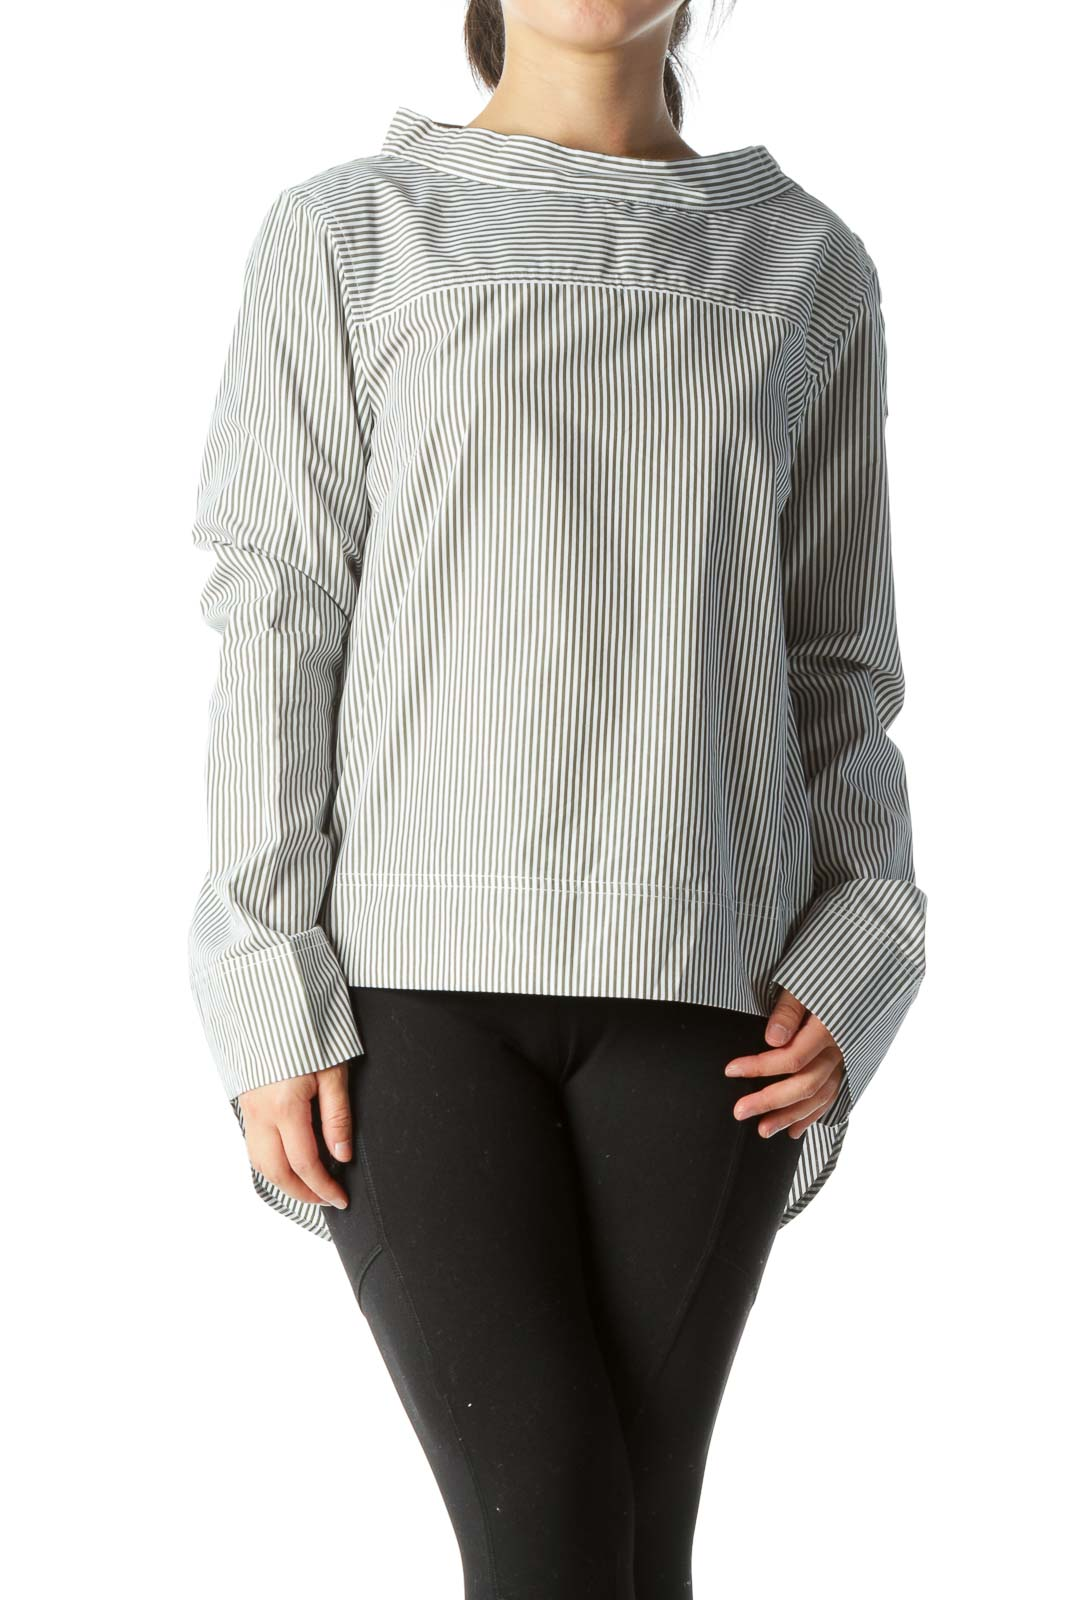 Olive Green Whit 100% Cotton Striped High-Low Shirt